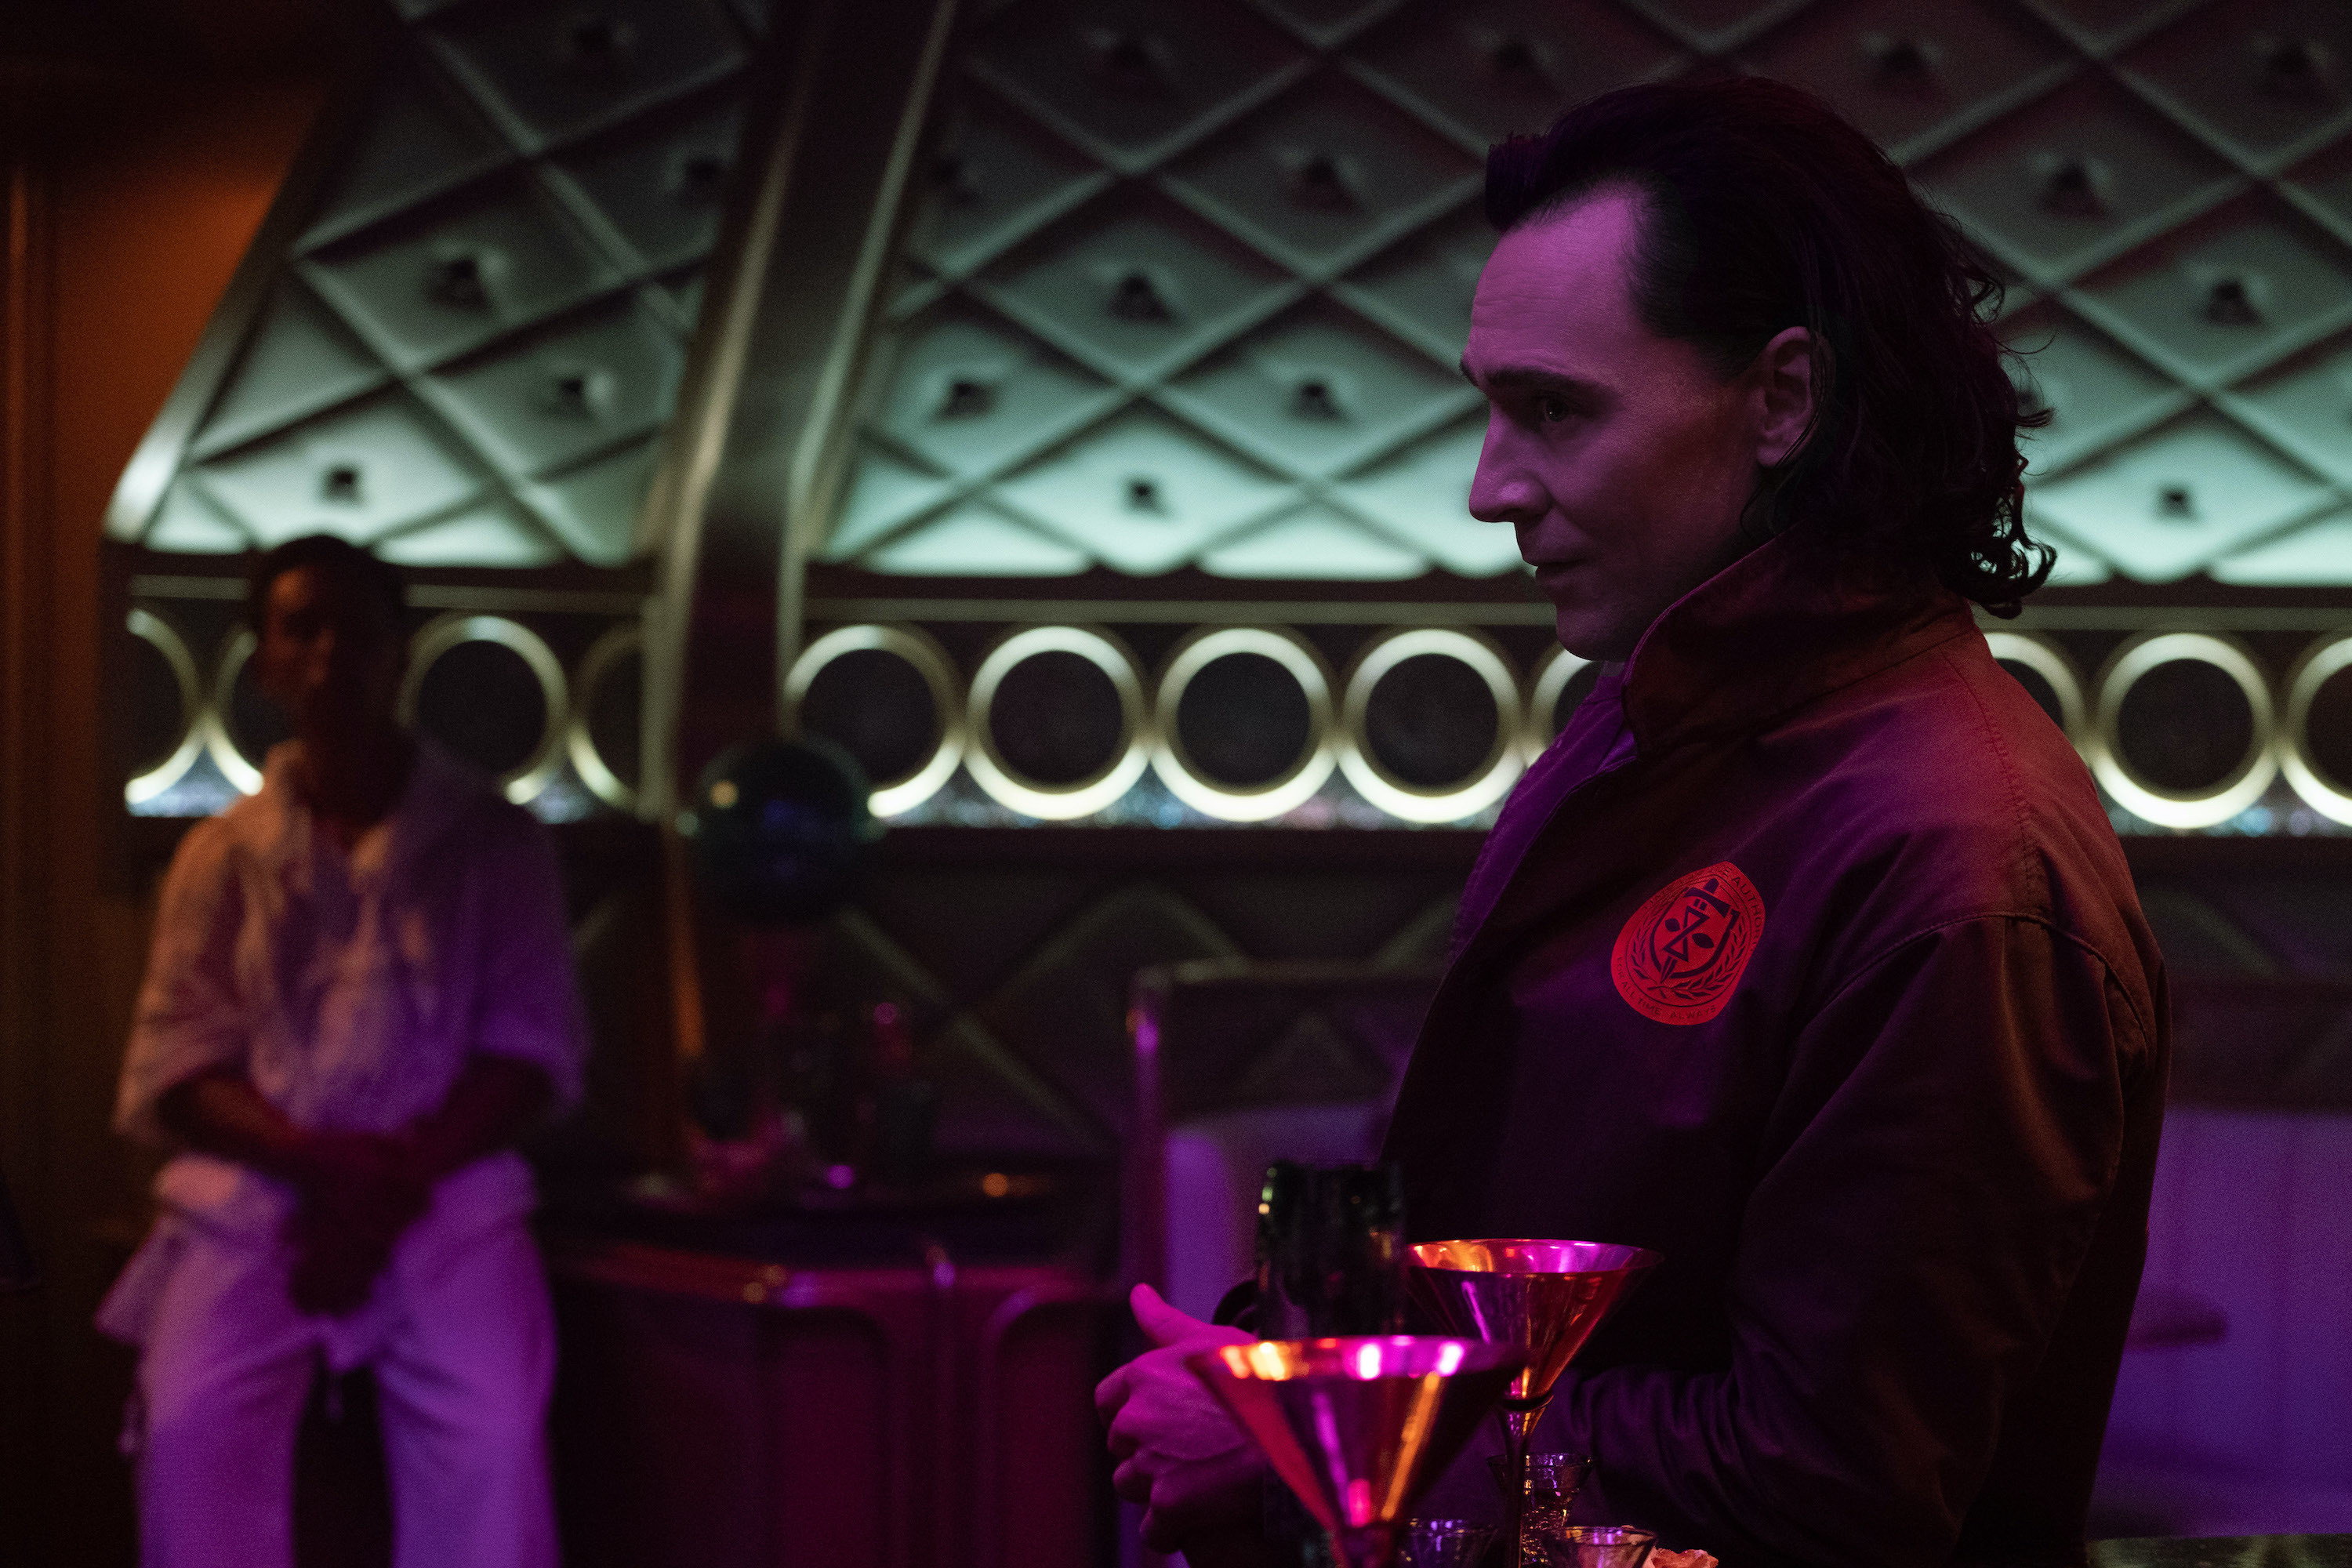 Loki sits at the bar at the restaurant and looks into the distance